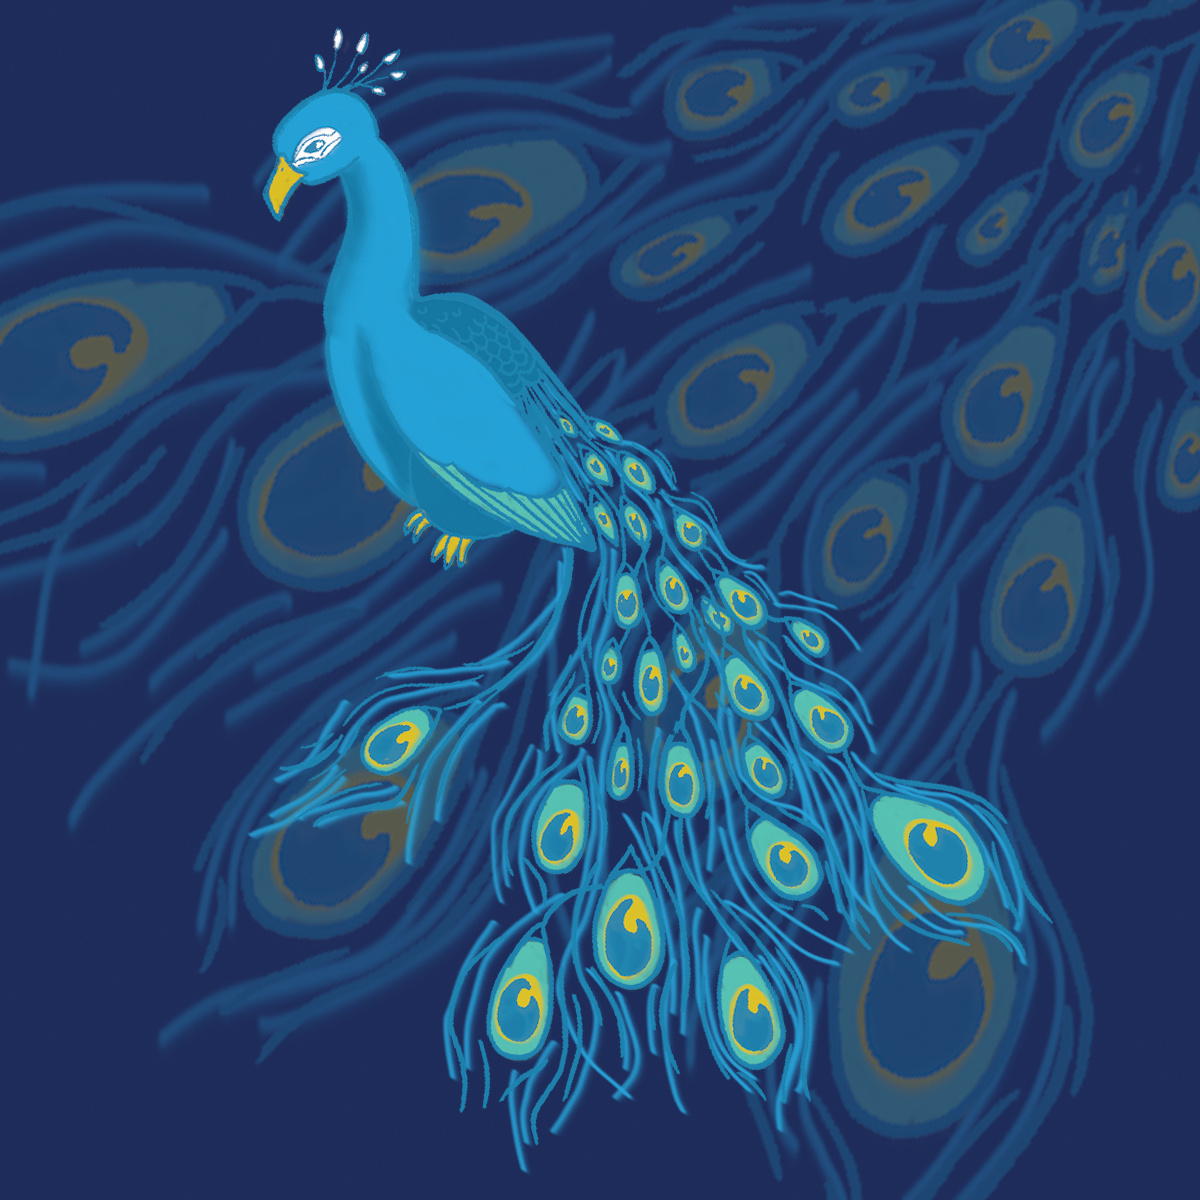 peacock feathers design